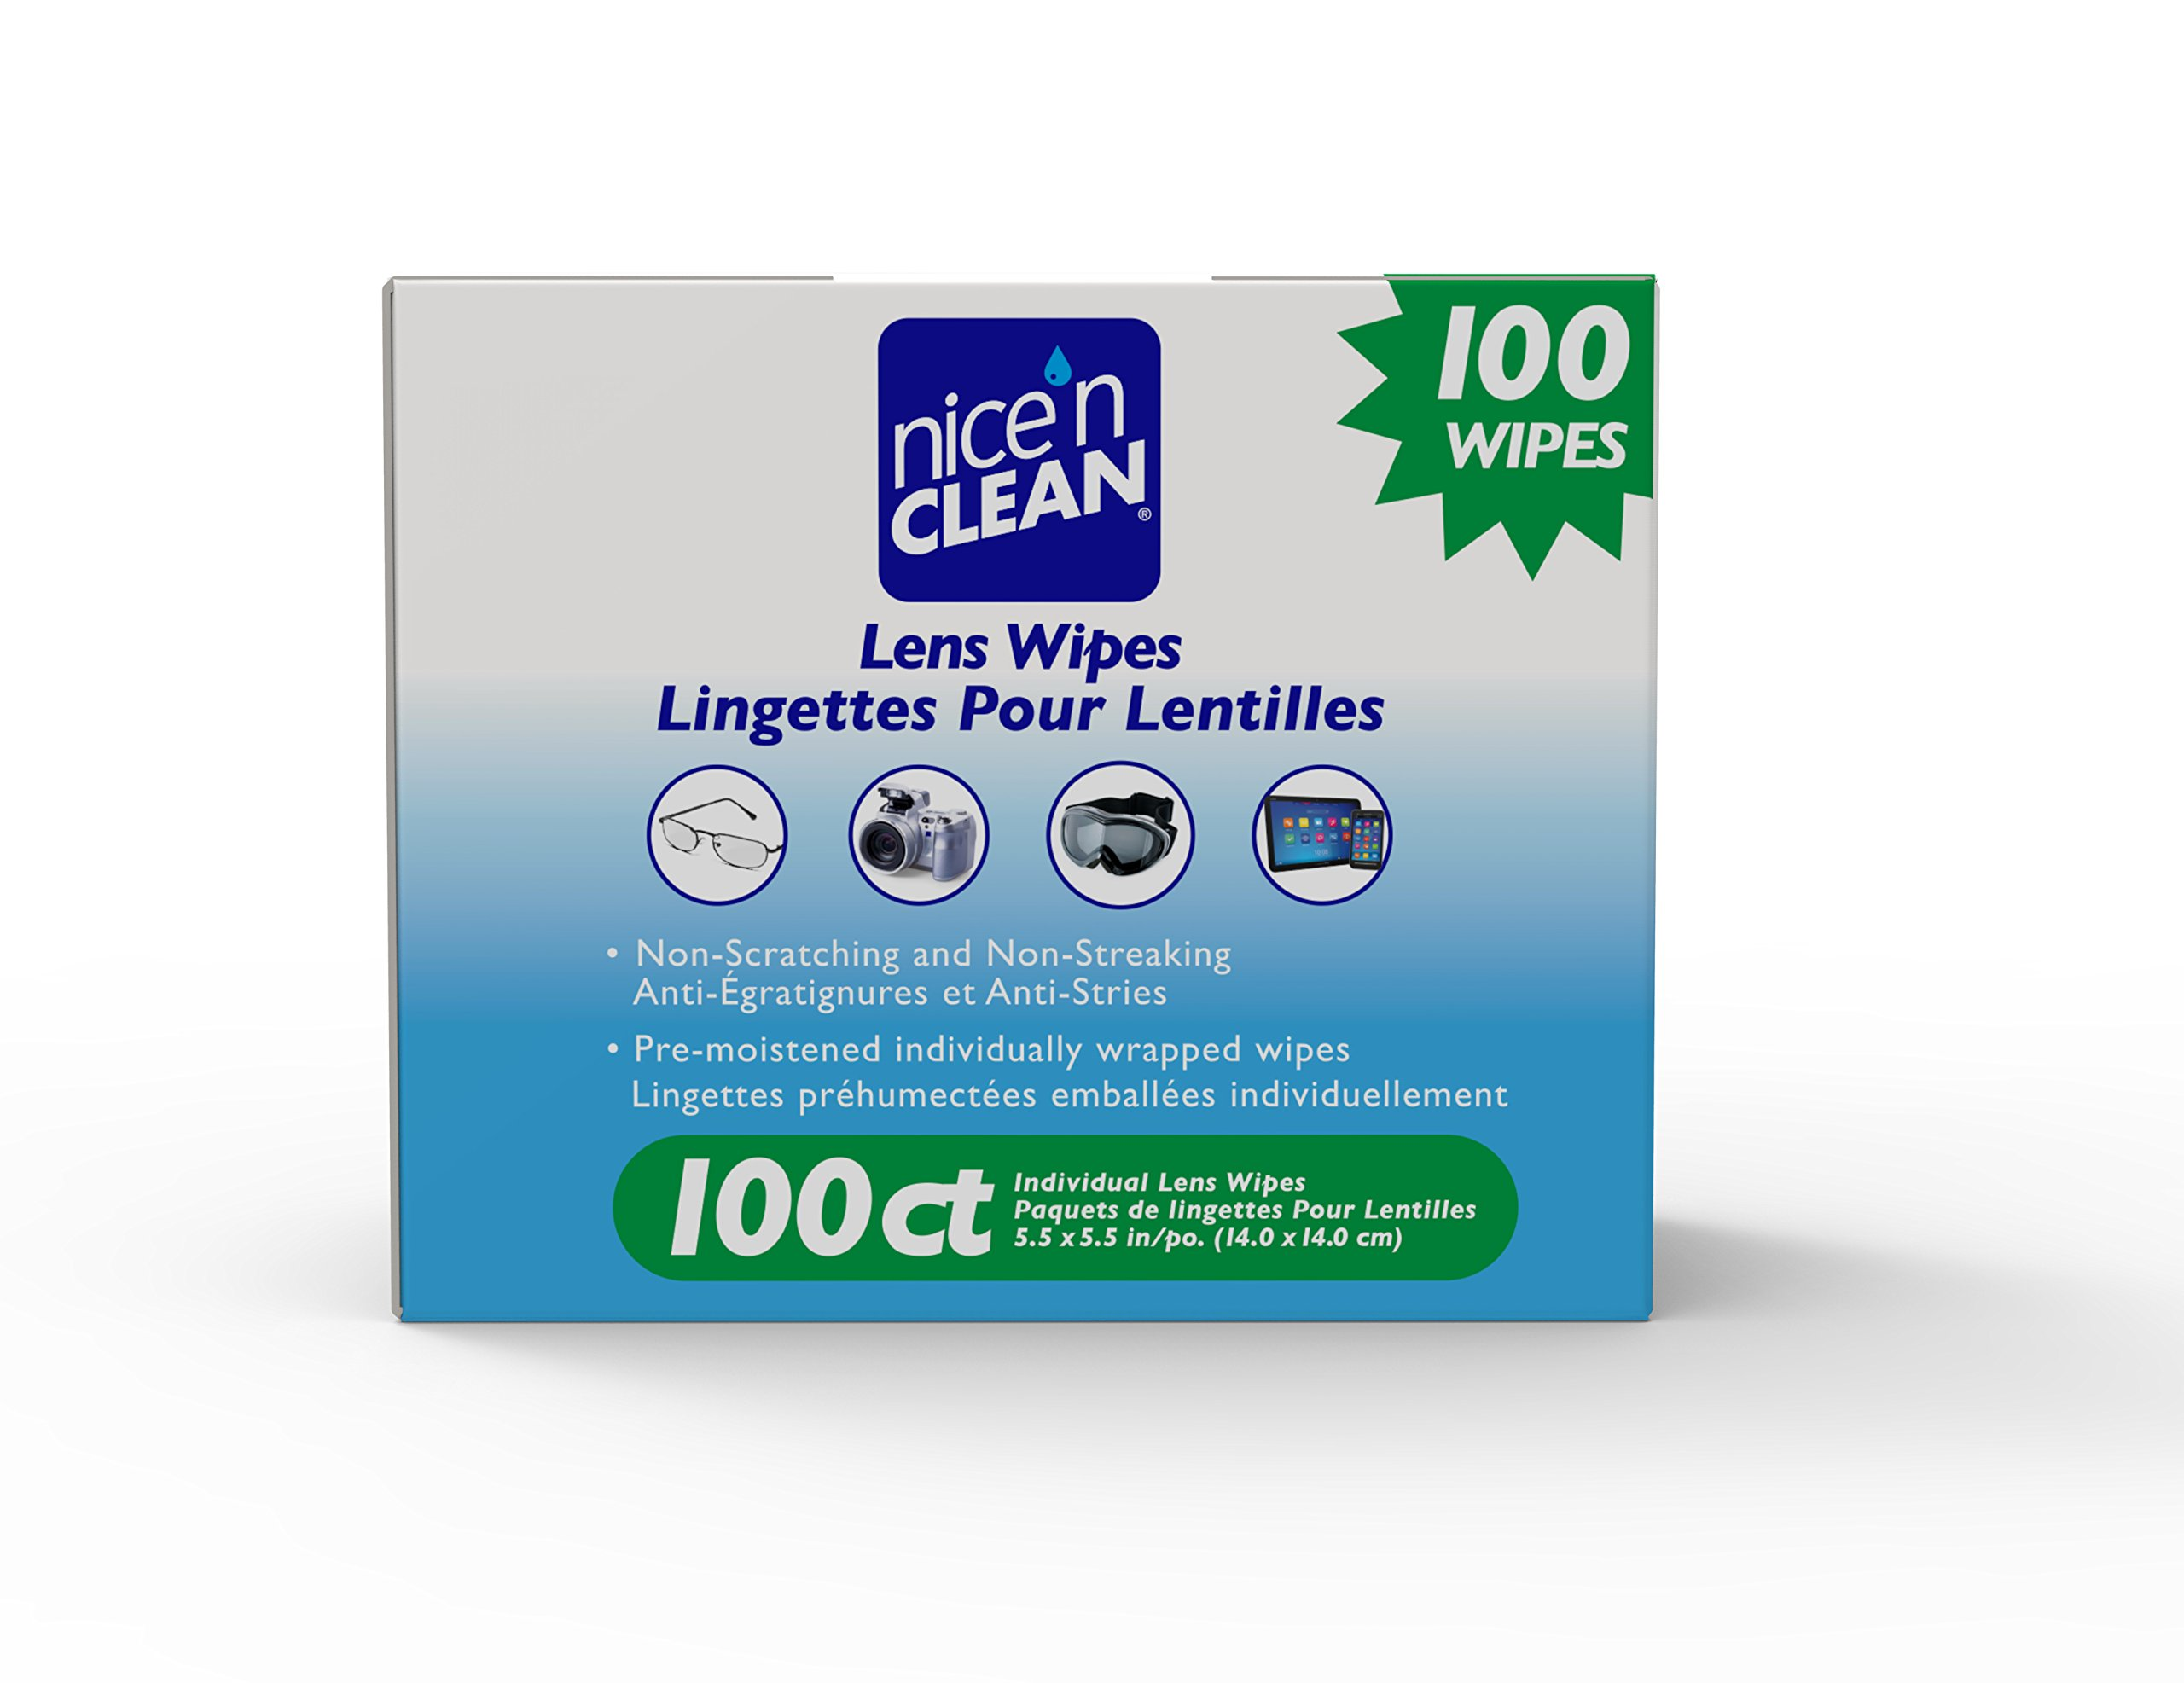 Nice 'n Clean Lens Cleaning Wipes (100 Total Wipes) | Pre-Moistened Individually Wrapped Wipes | Non-Scratching & Non-Streaking | Safe for Eyeglasses, Goggles, Camera Lens